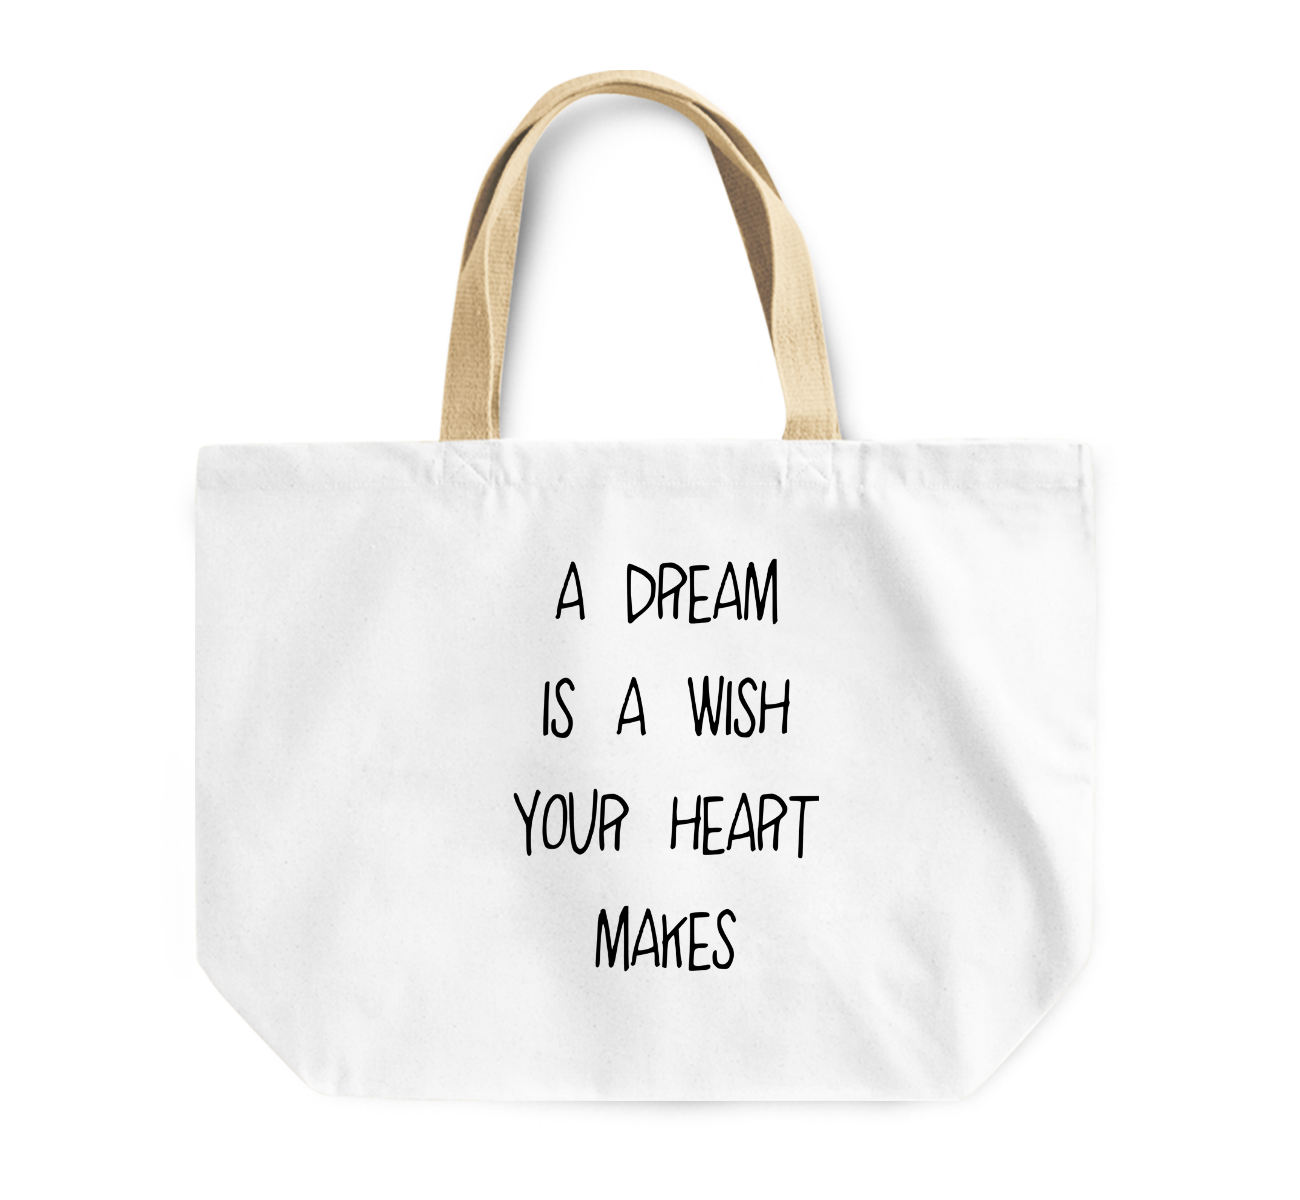 Tote Bag a Dream Is a Wish Your Heart Makes Dreamers Reusable Shopping Bag By Loud Universe